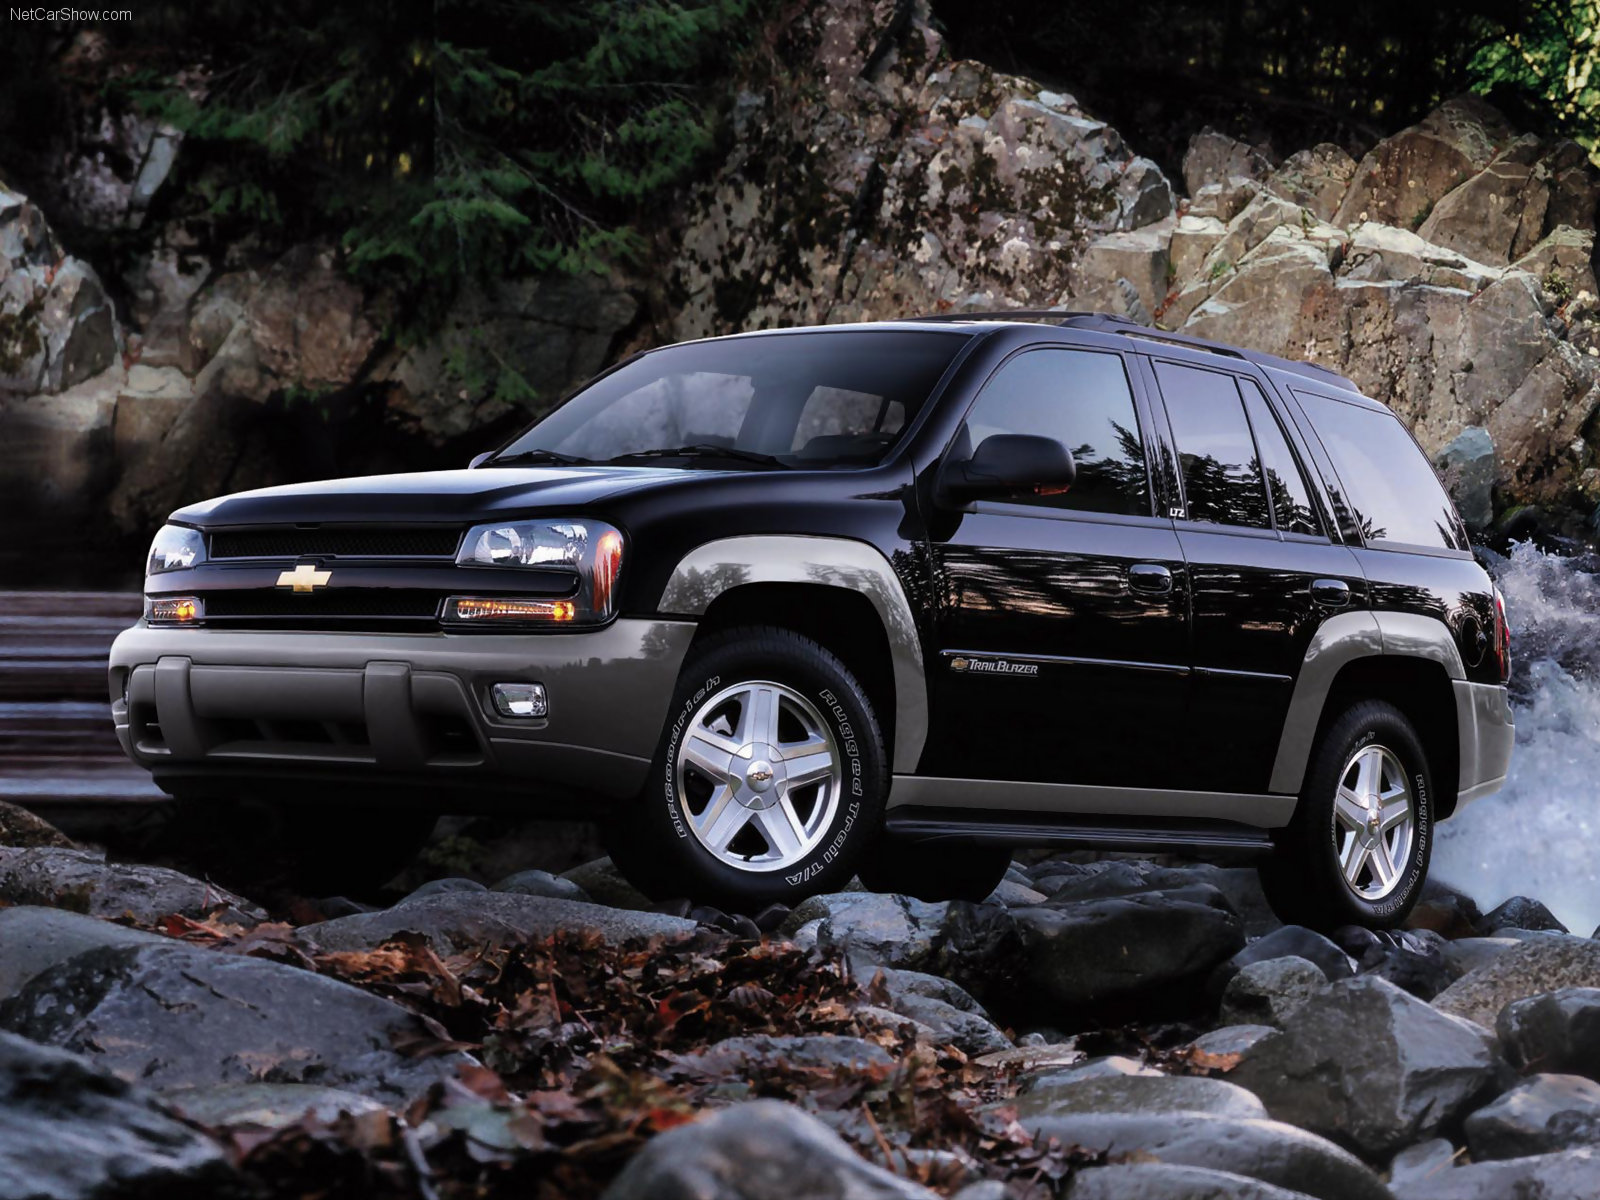 2002 chevrolet trailblazer information and photos zombiedrive. Cars Review. Best American Auto & Cars Review